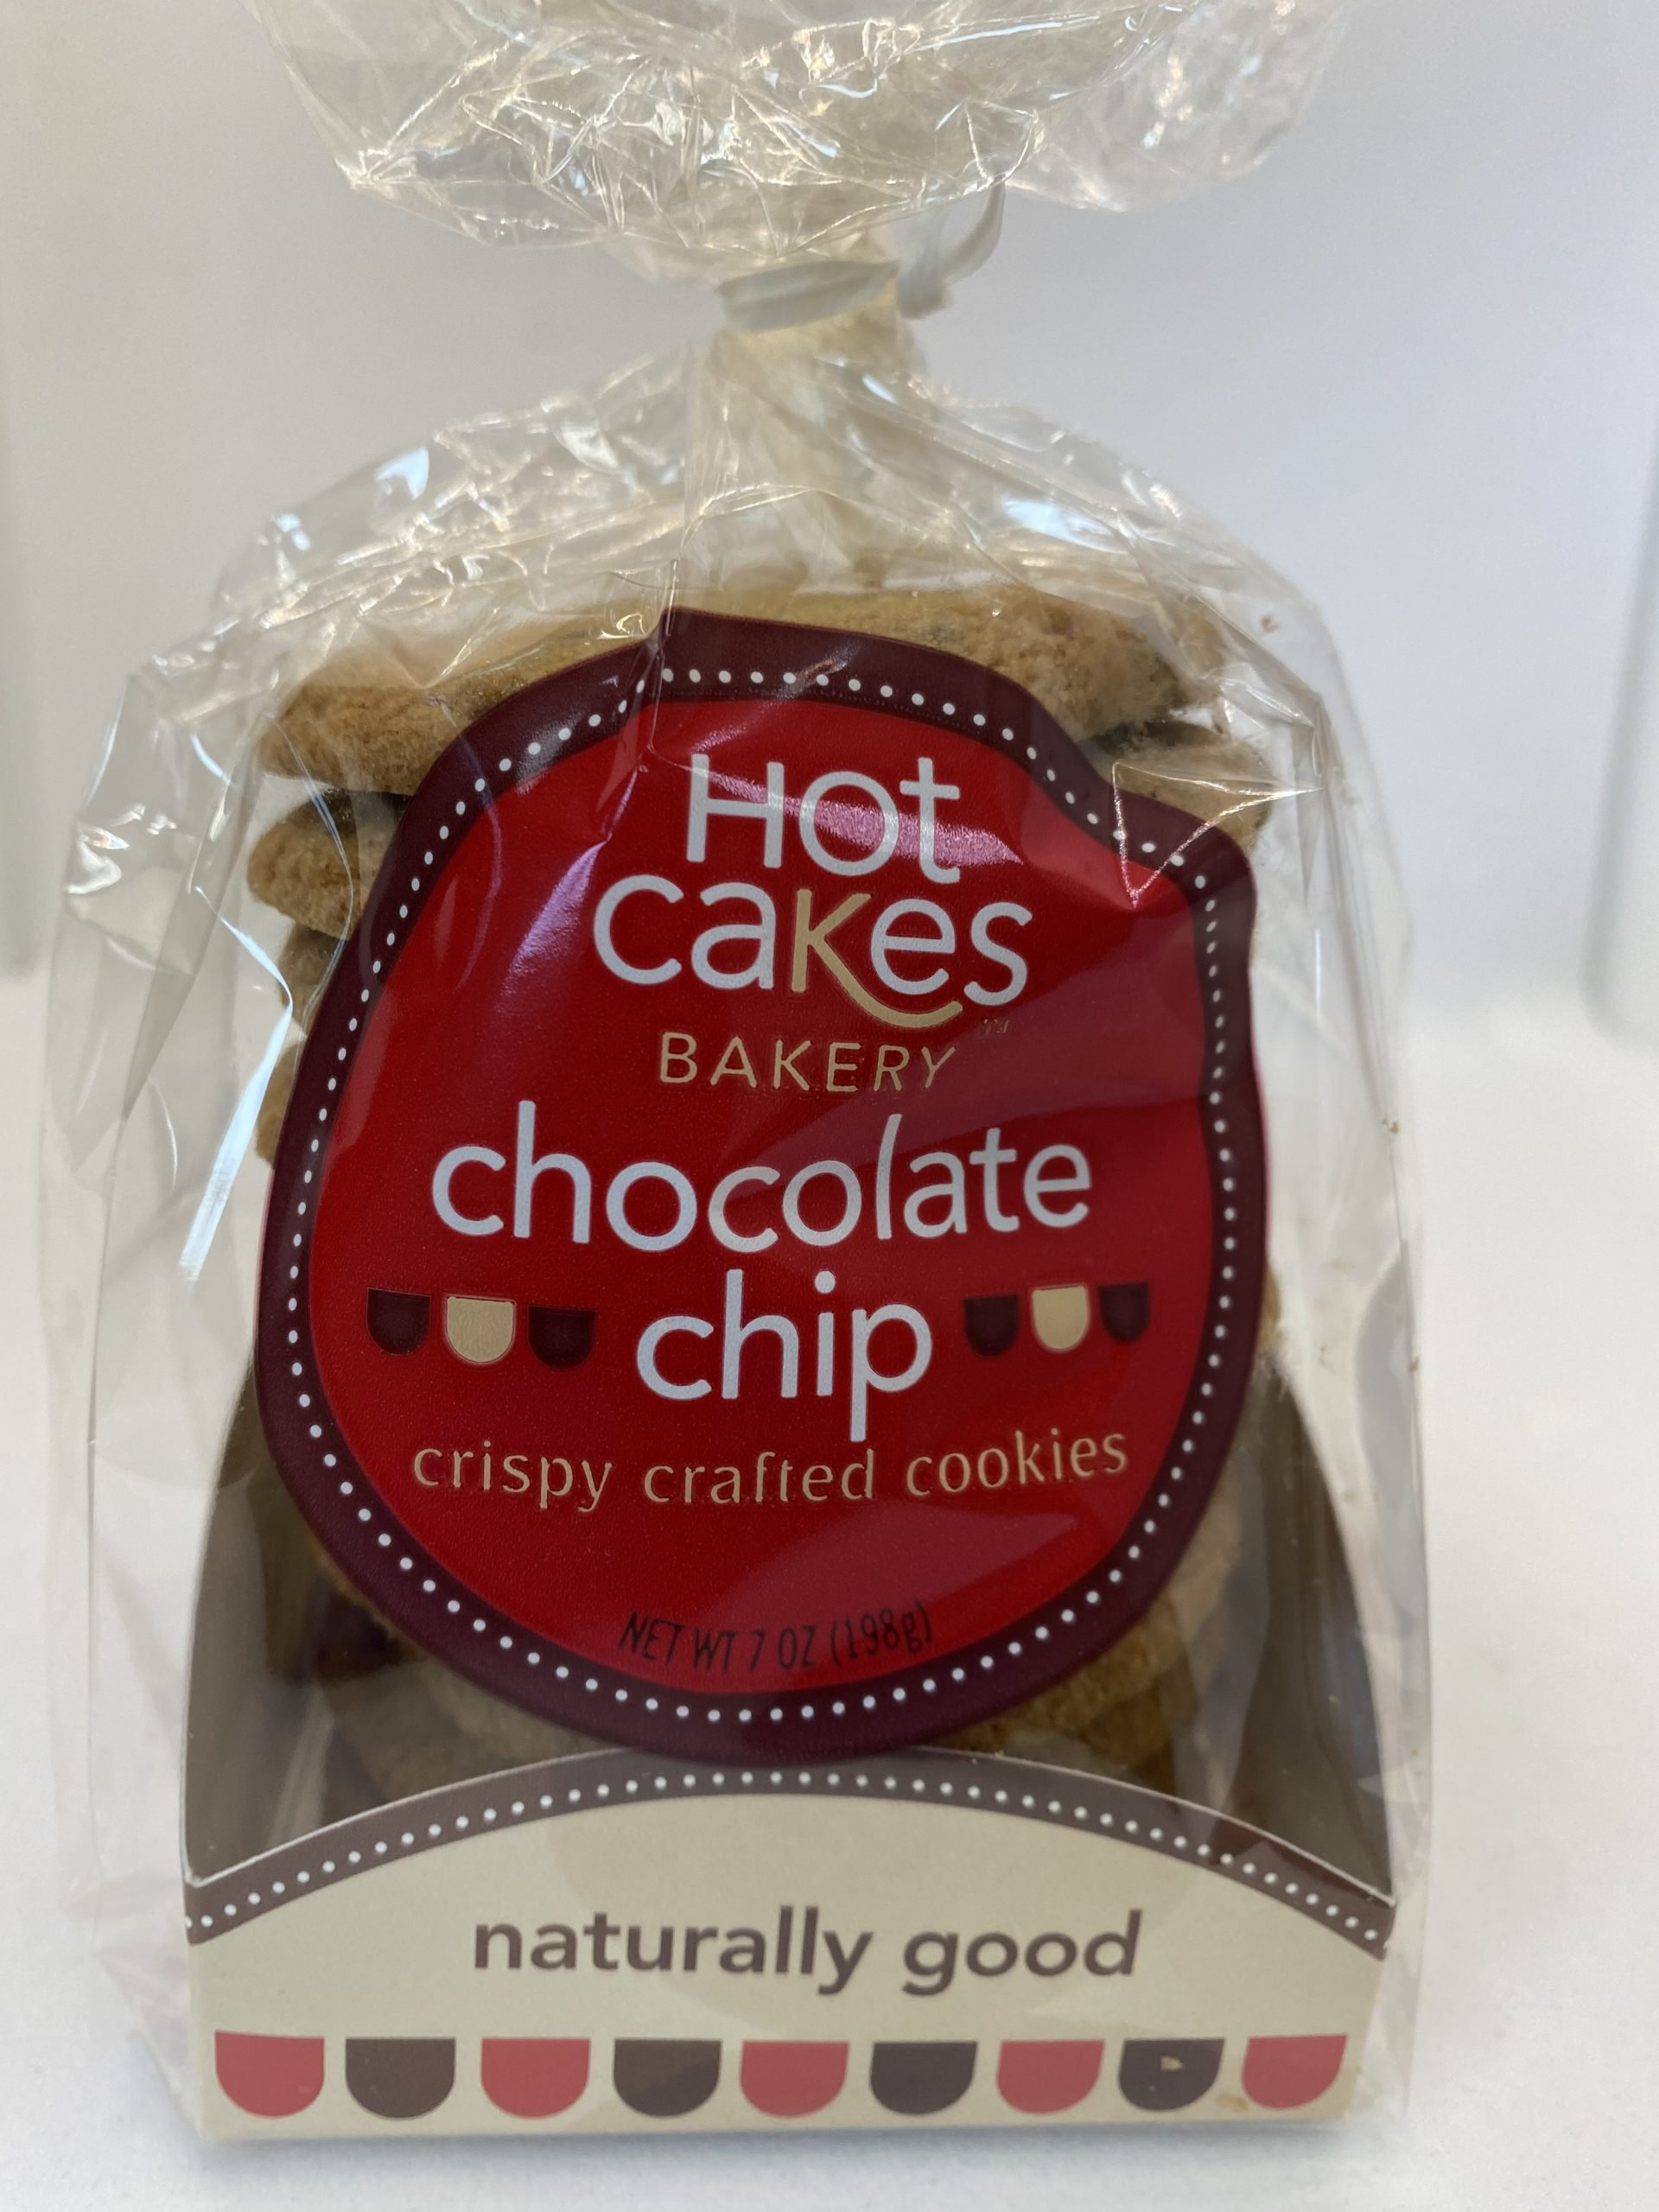 Hot Cakes Bakery - Crispy Crafted Chocolate Chip Cookies Packaged